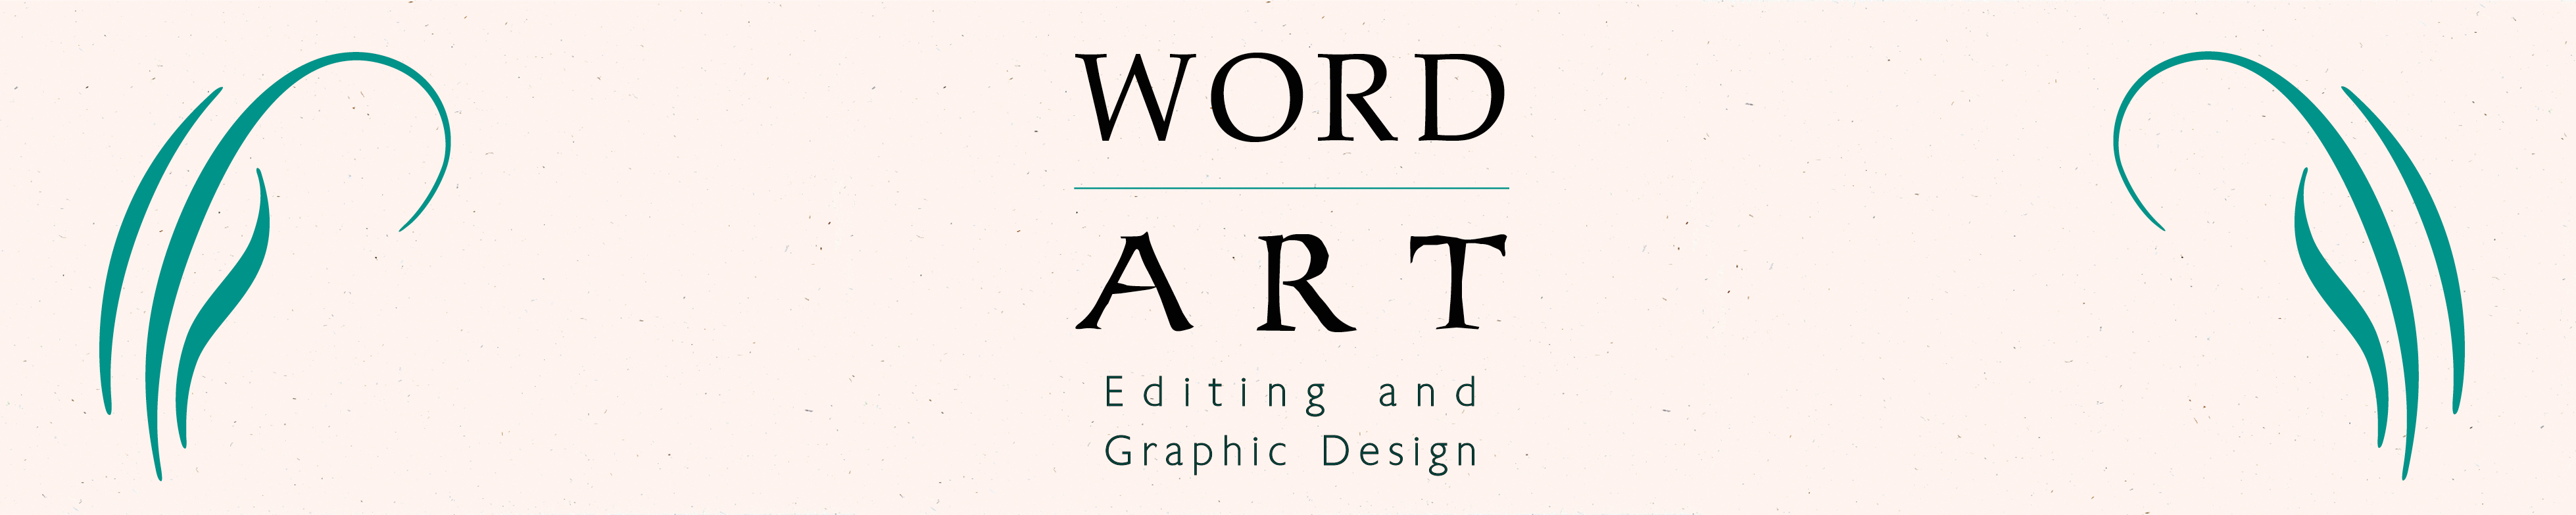 WordArt Editing & Graphic Design